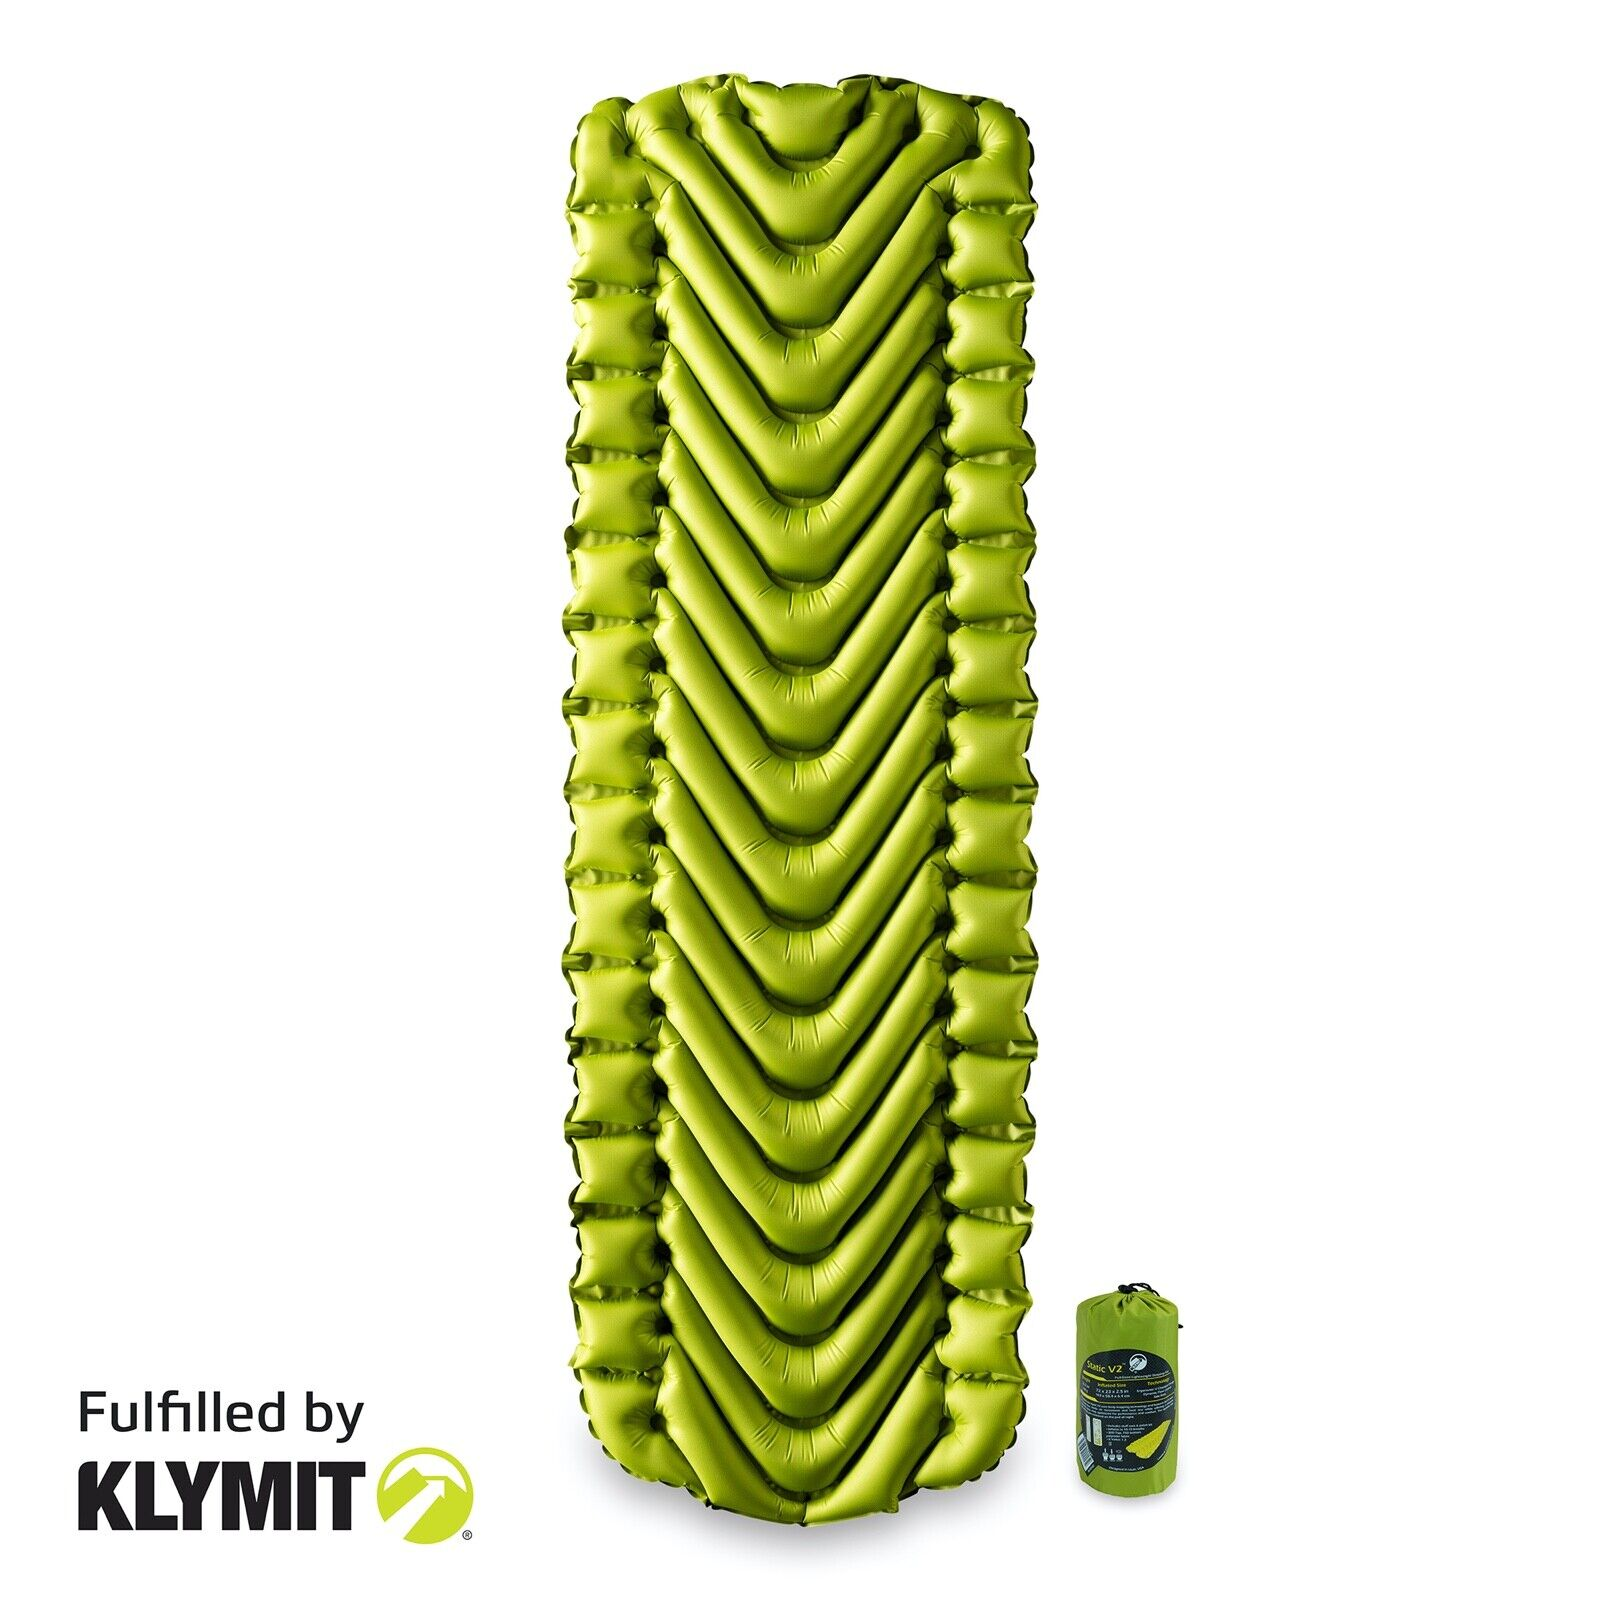 Klymit Static V2 Sleeping Camping Air Pad Ultra-Light - Fact